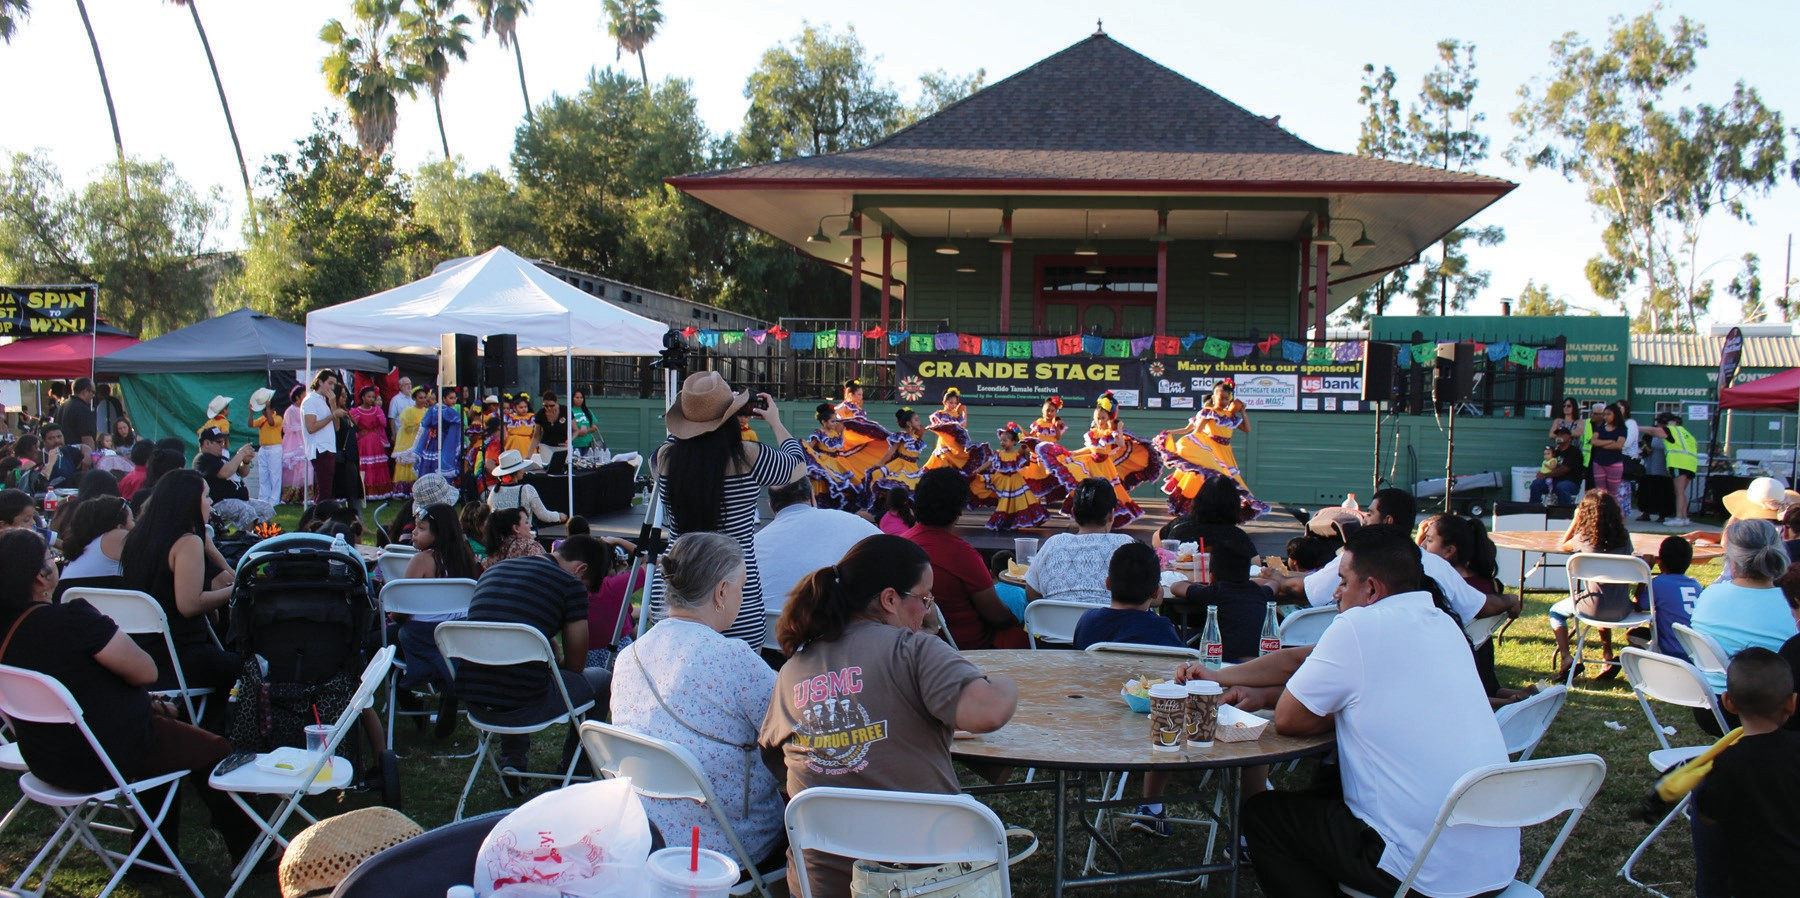 The 2nd annual Escondido Tamale Festival Saturday attracted as many as 12,000 attendees. See more photos on page 16.